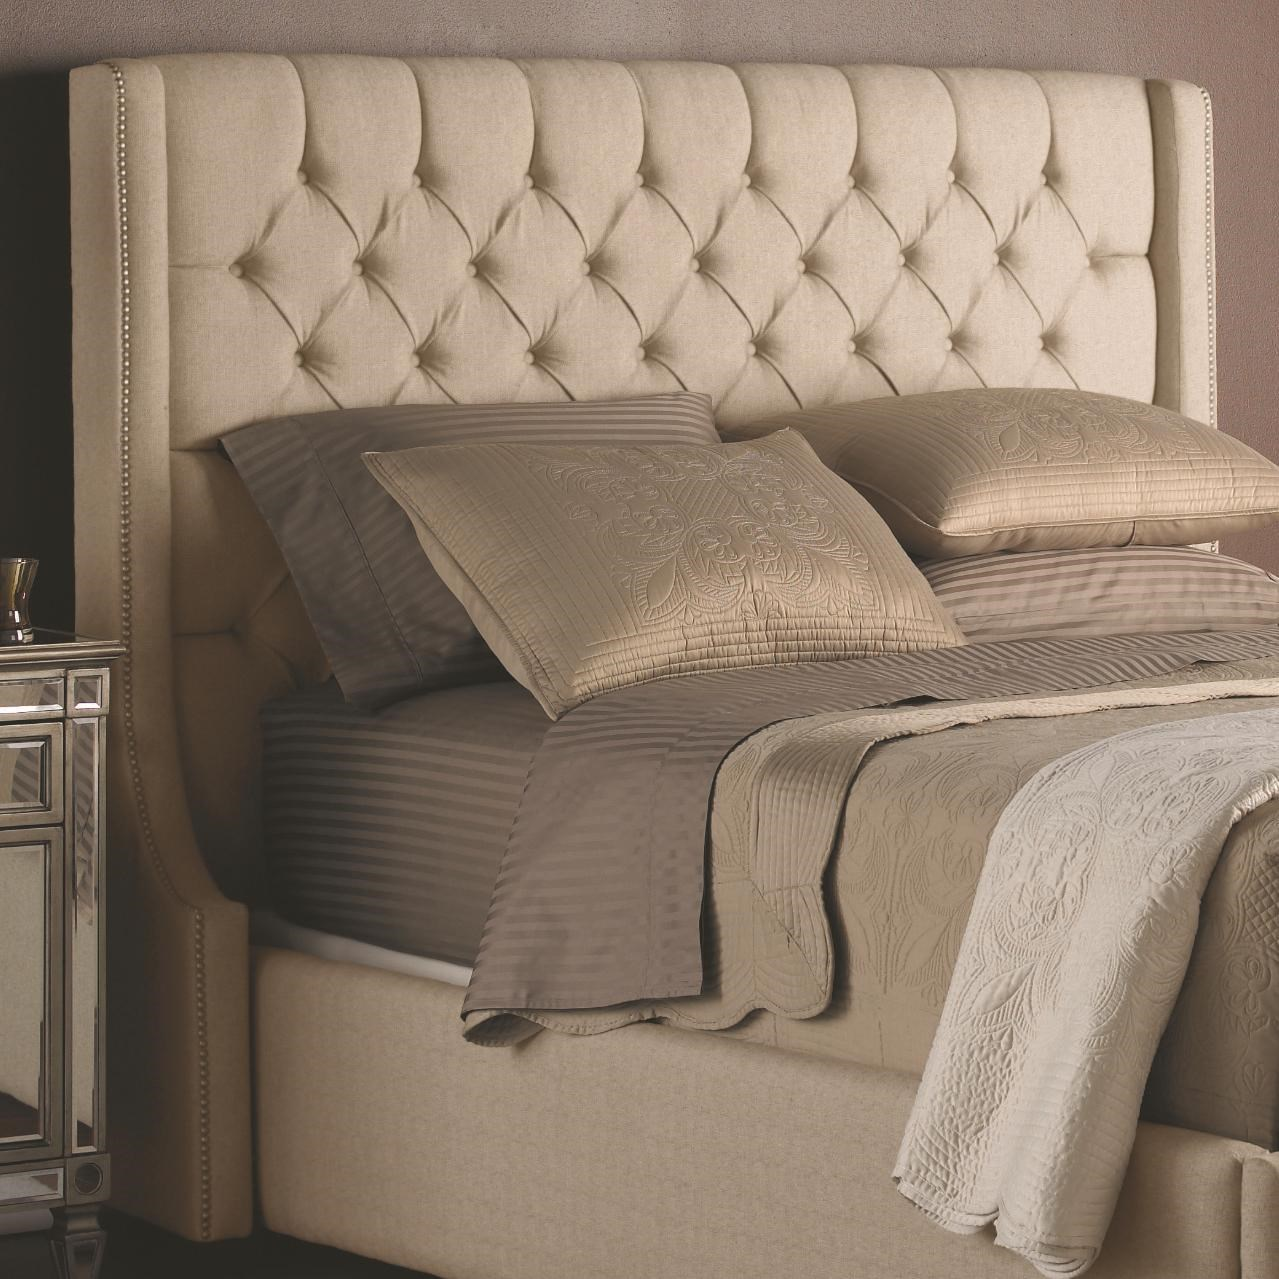 decorrest beds  king upholstered headboard with button tufting, Headboard designs